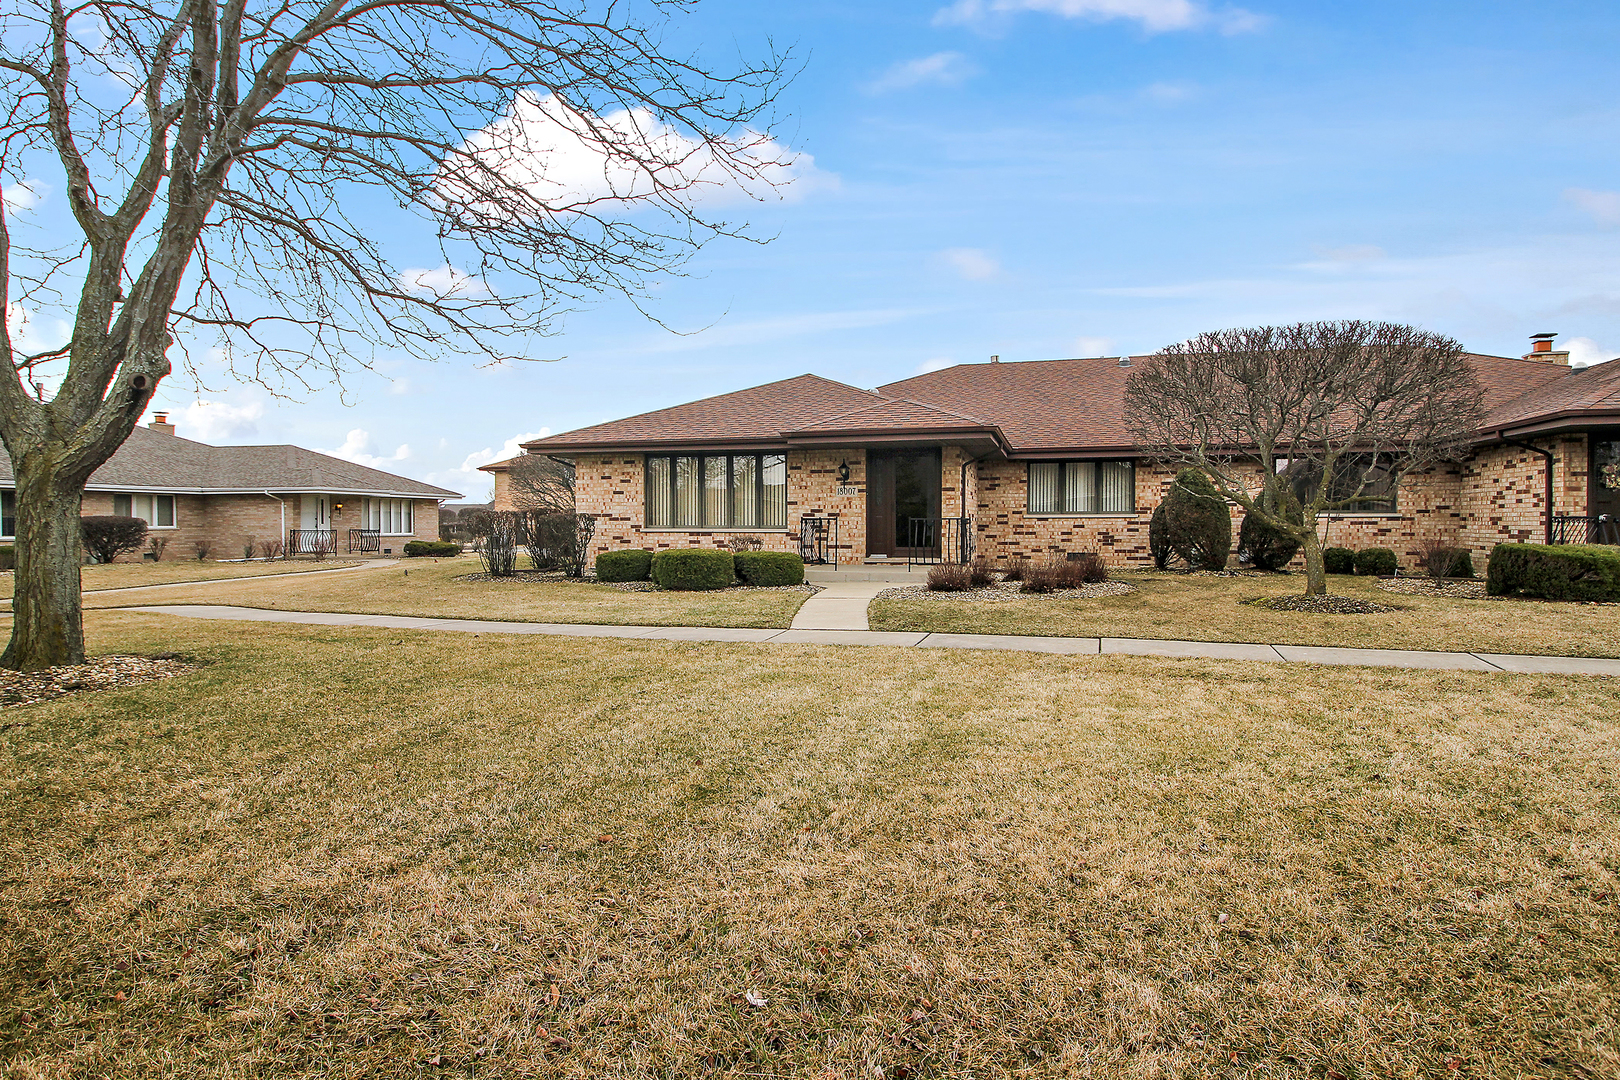 Photo of 18007 Indiana Court, Unit Number 160, Orland Park, IL 60467 (MLS # 10678021)